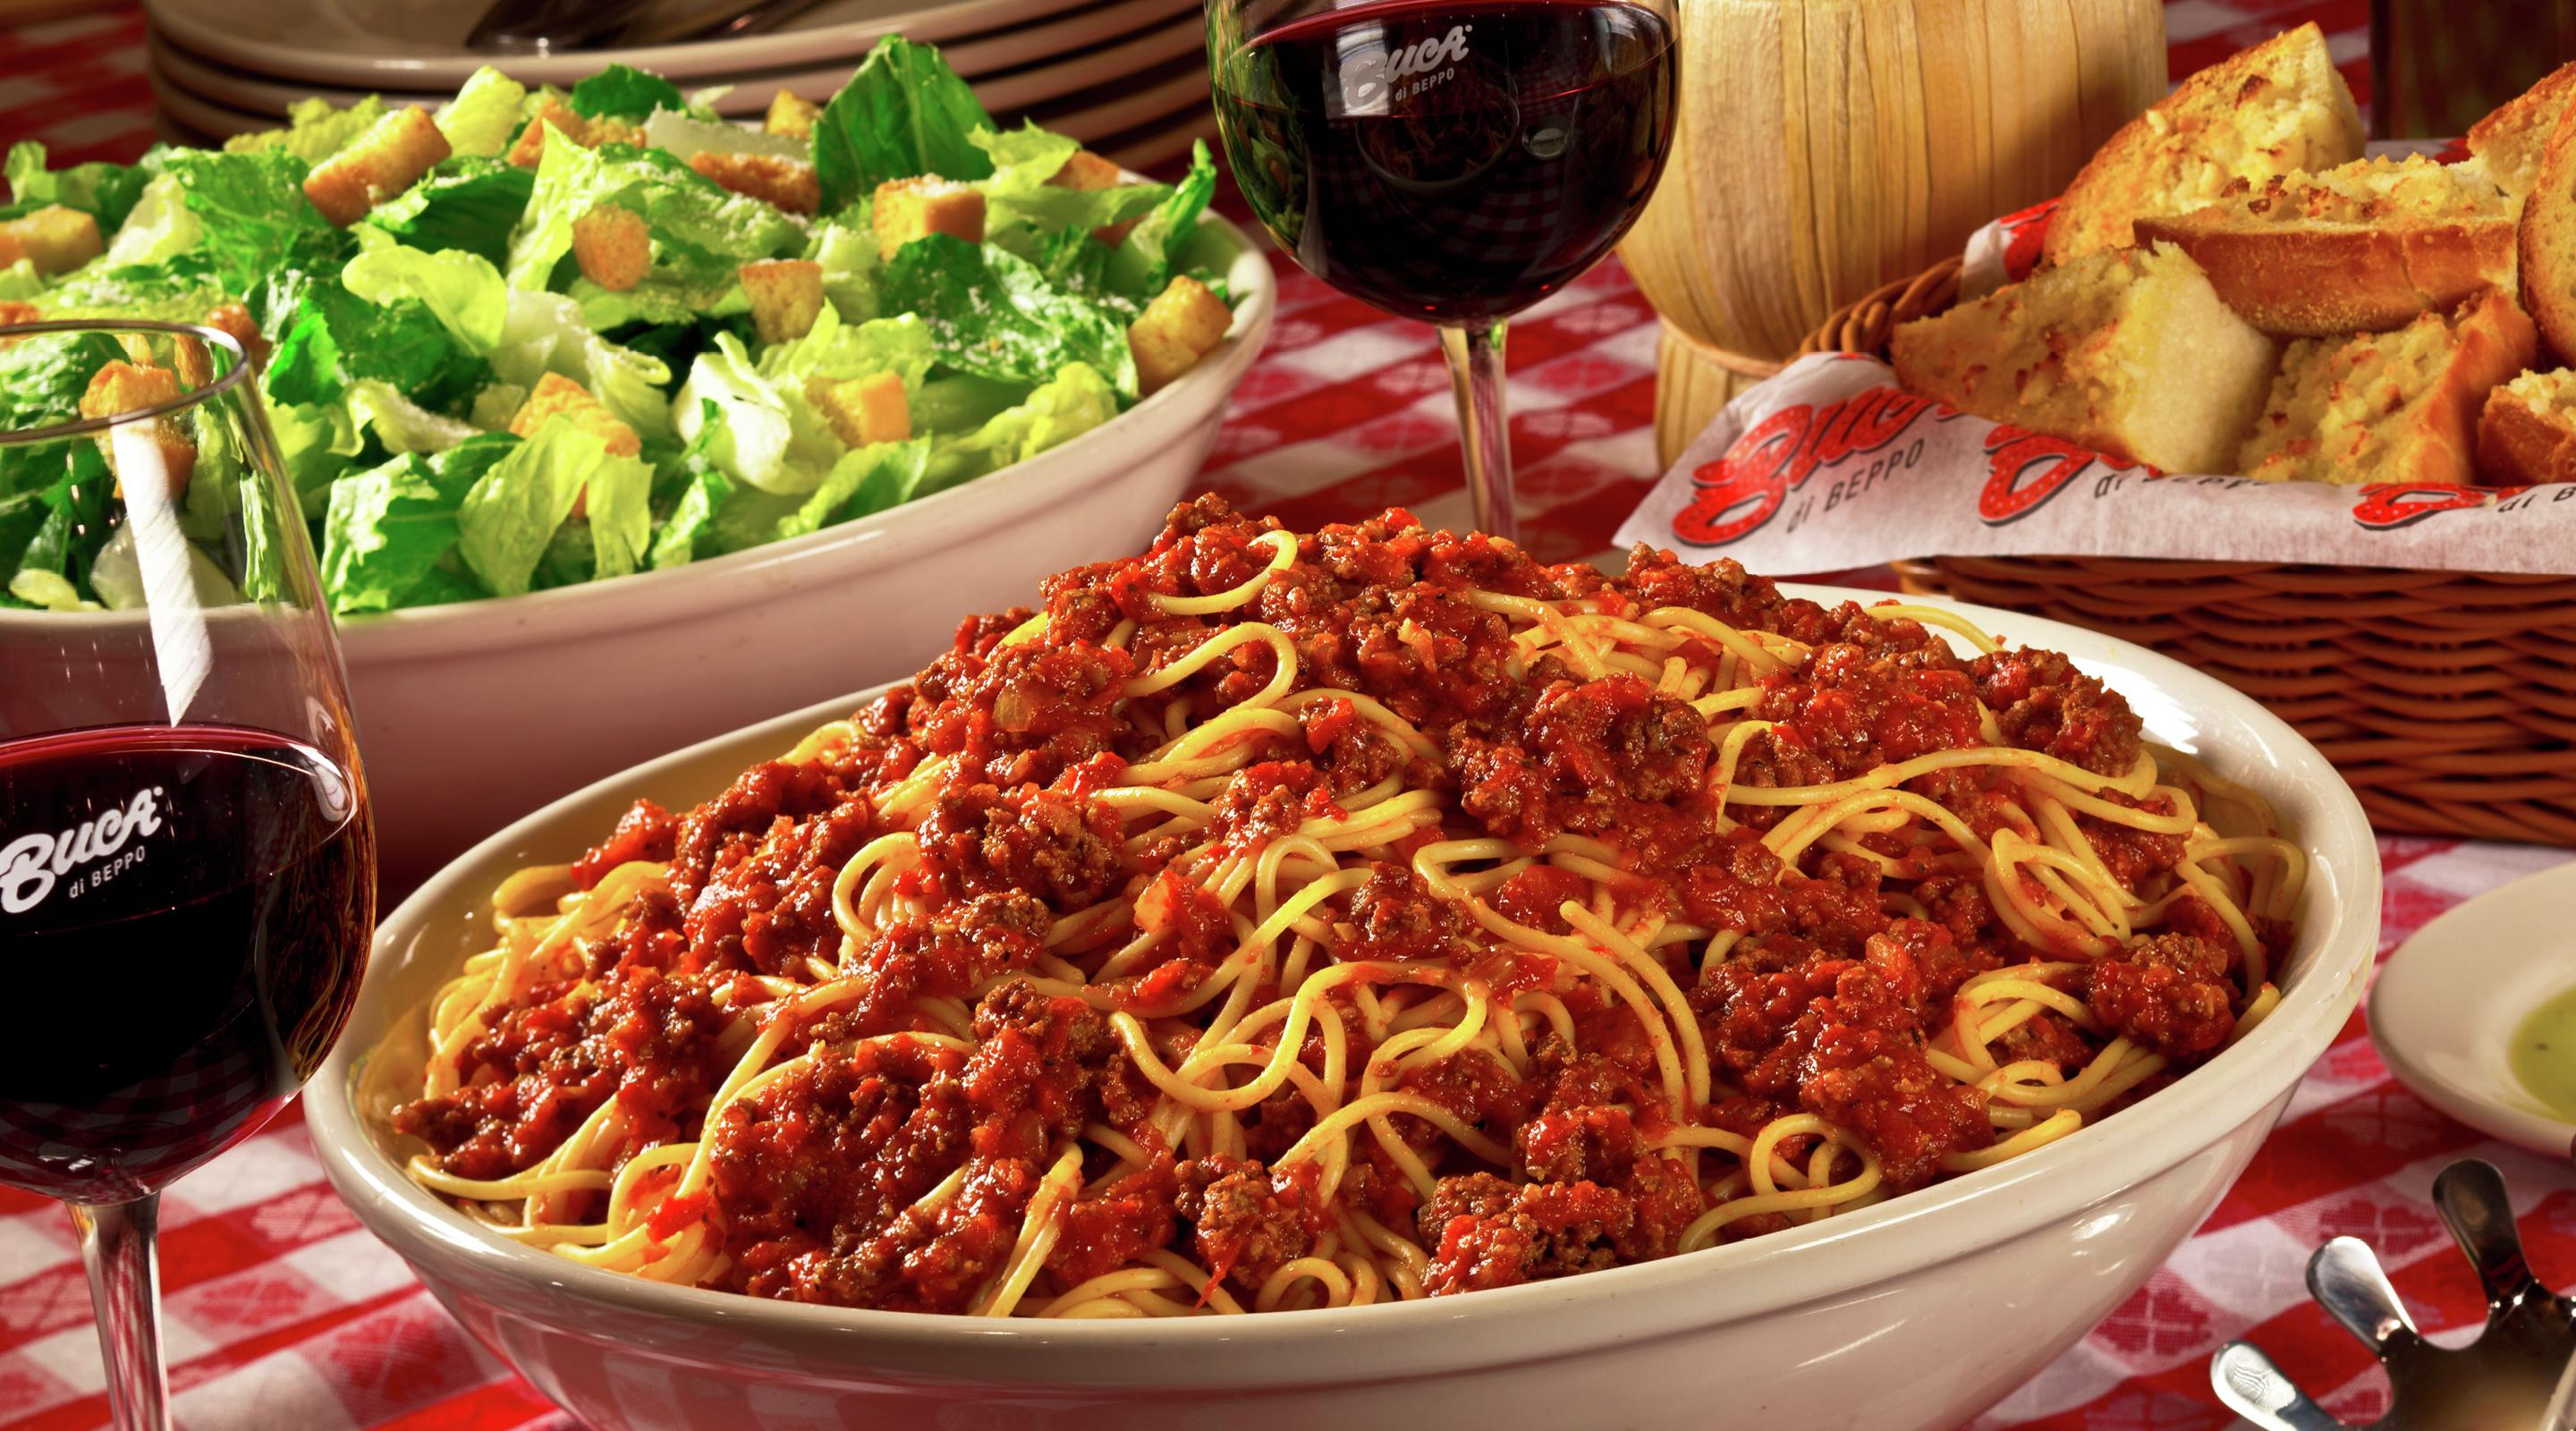 This image is of a spaghetti dinner table set at Buca di Beppo.